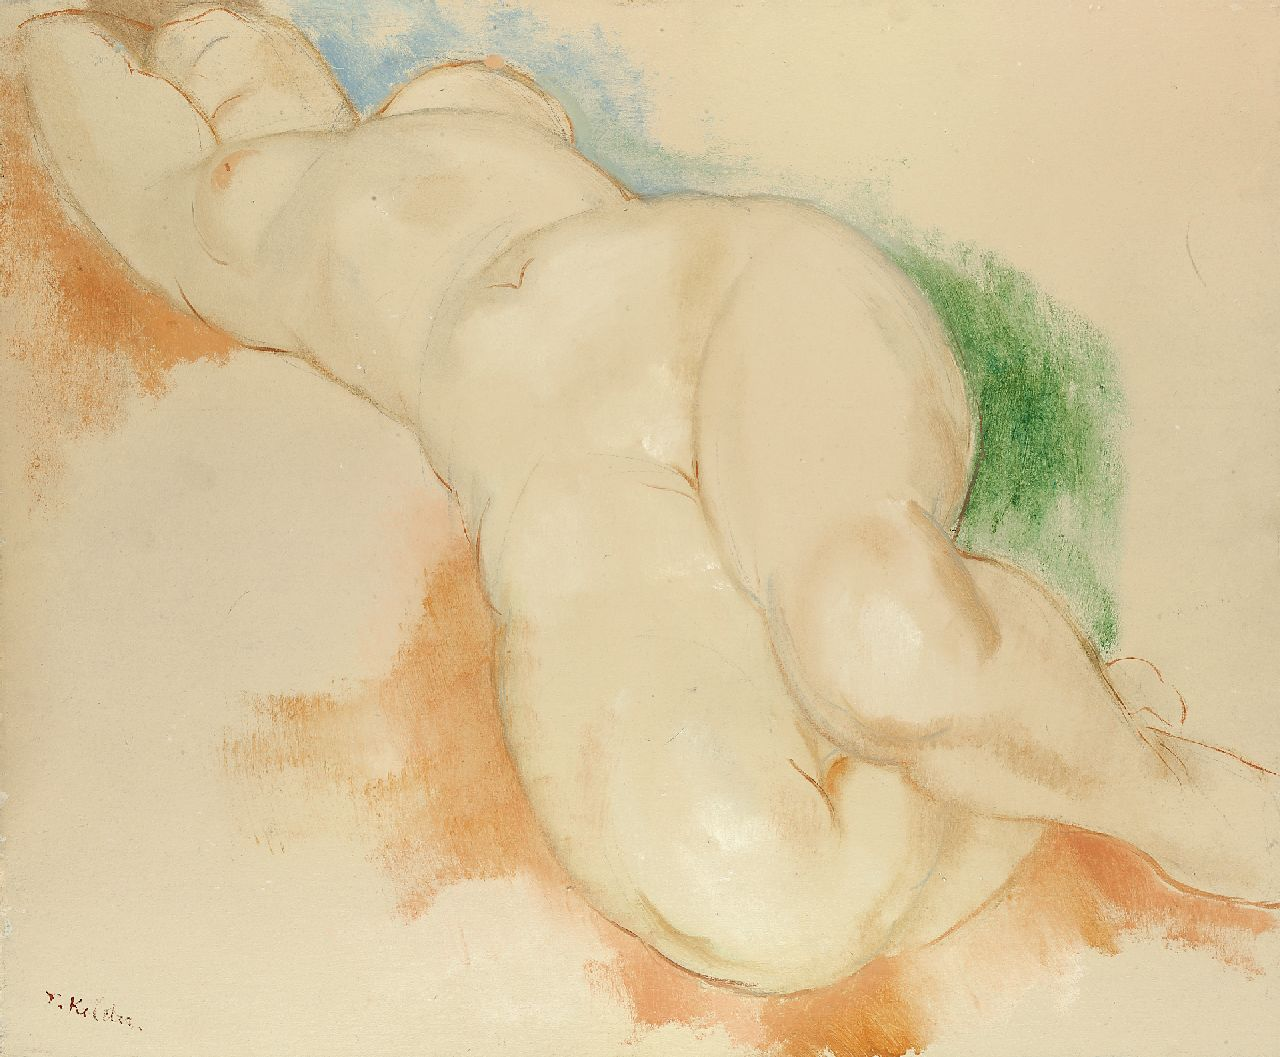 Kelder A.B.  | Antonius Bernardus 'Toon' Kelder | Watercolours and drawings offered for sale | Sleeping nude, pencil, chalk and oil on board 53.9 x 65.0 cm, signed l.l.